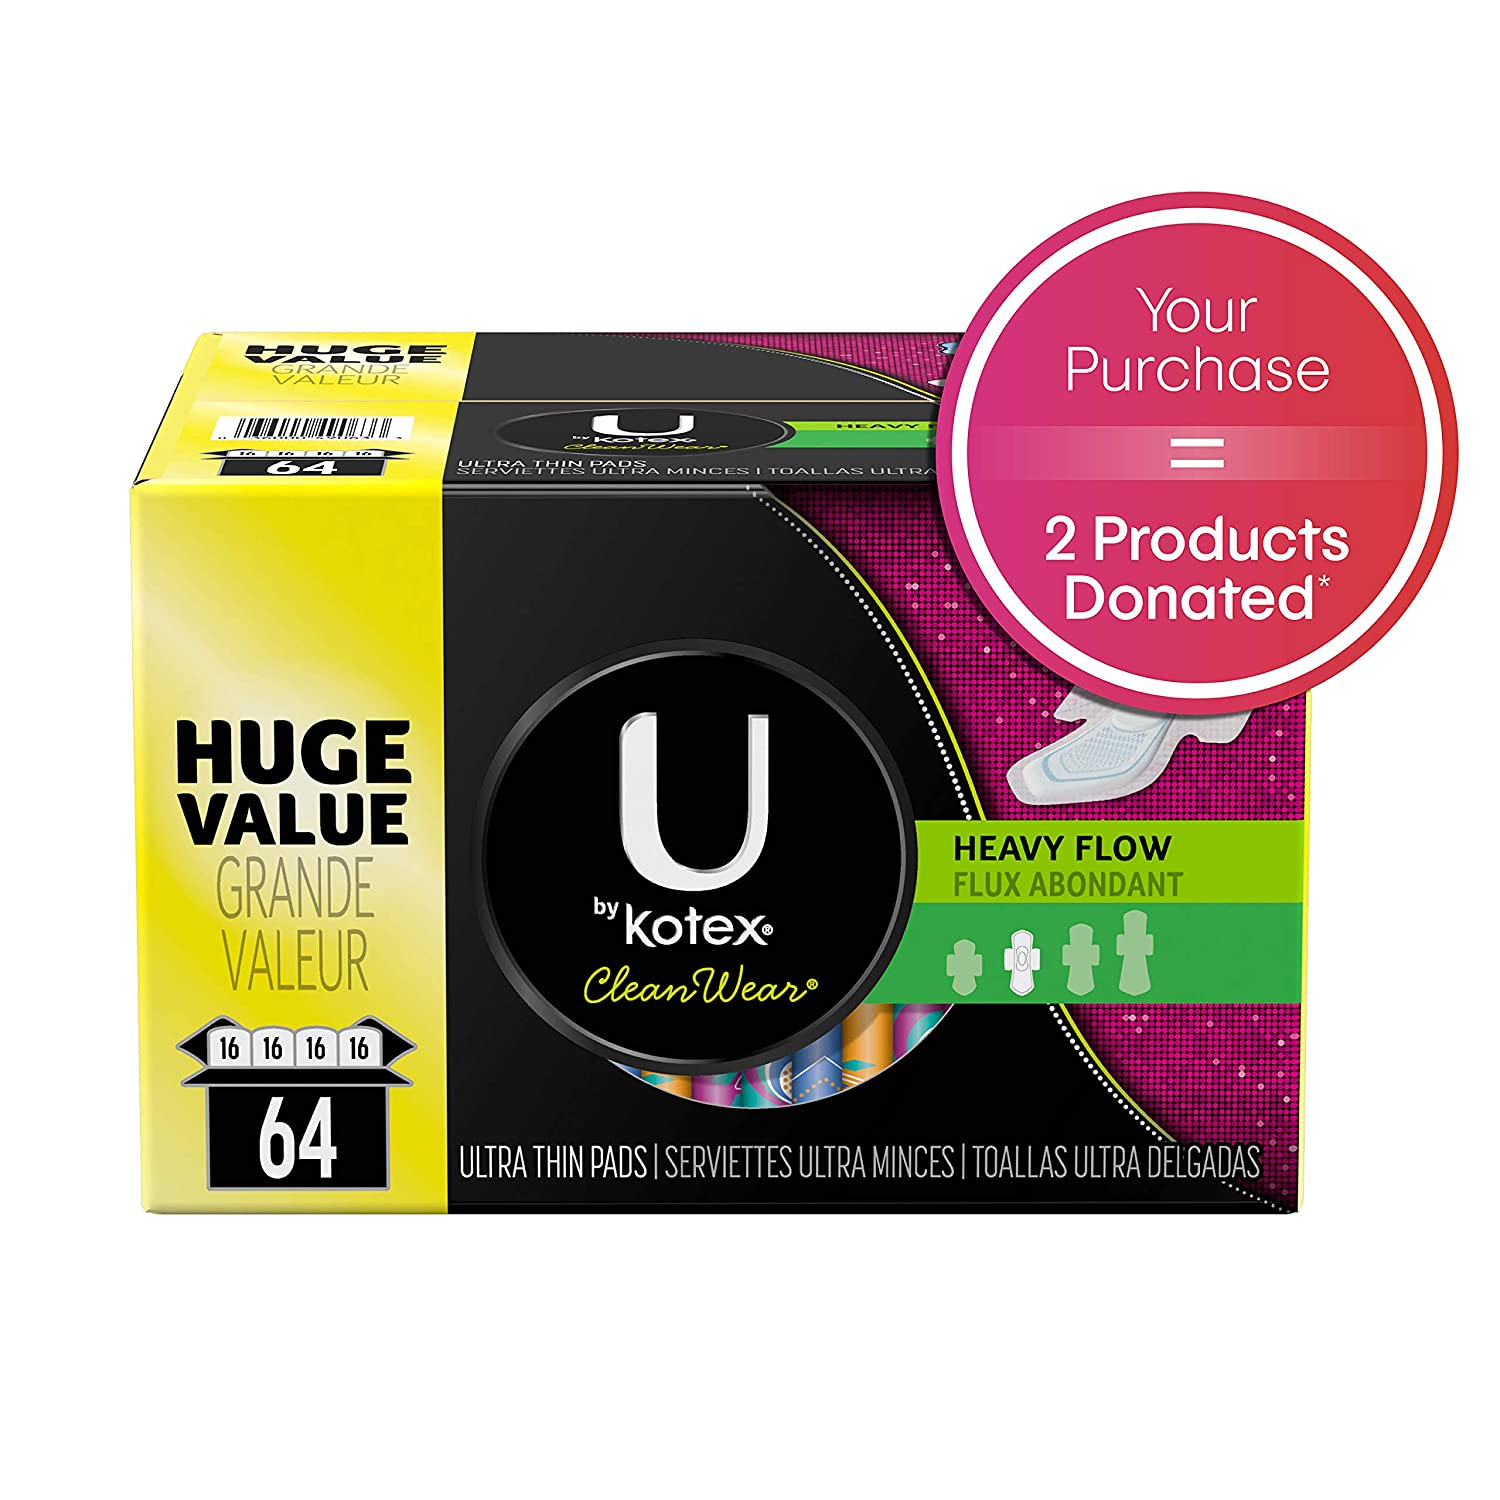 U By Kotex Cleanwear Ultra Thin Pads With Wings, Heavy Flow, 64 Count